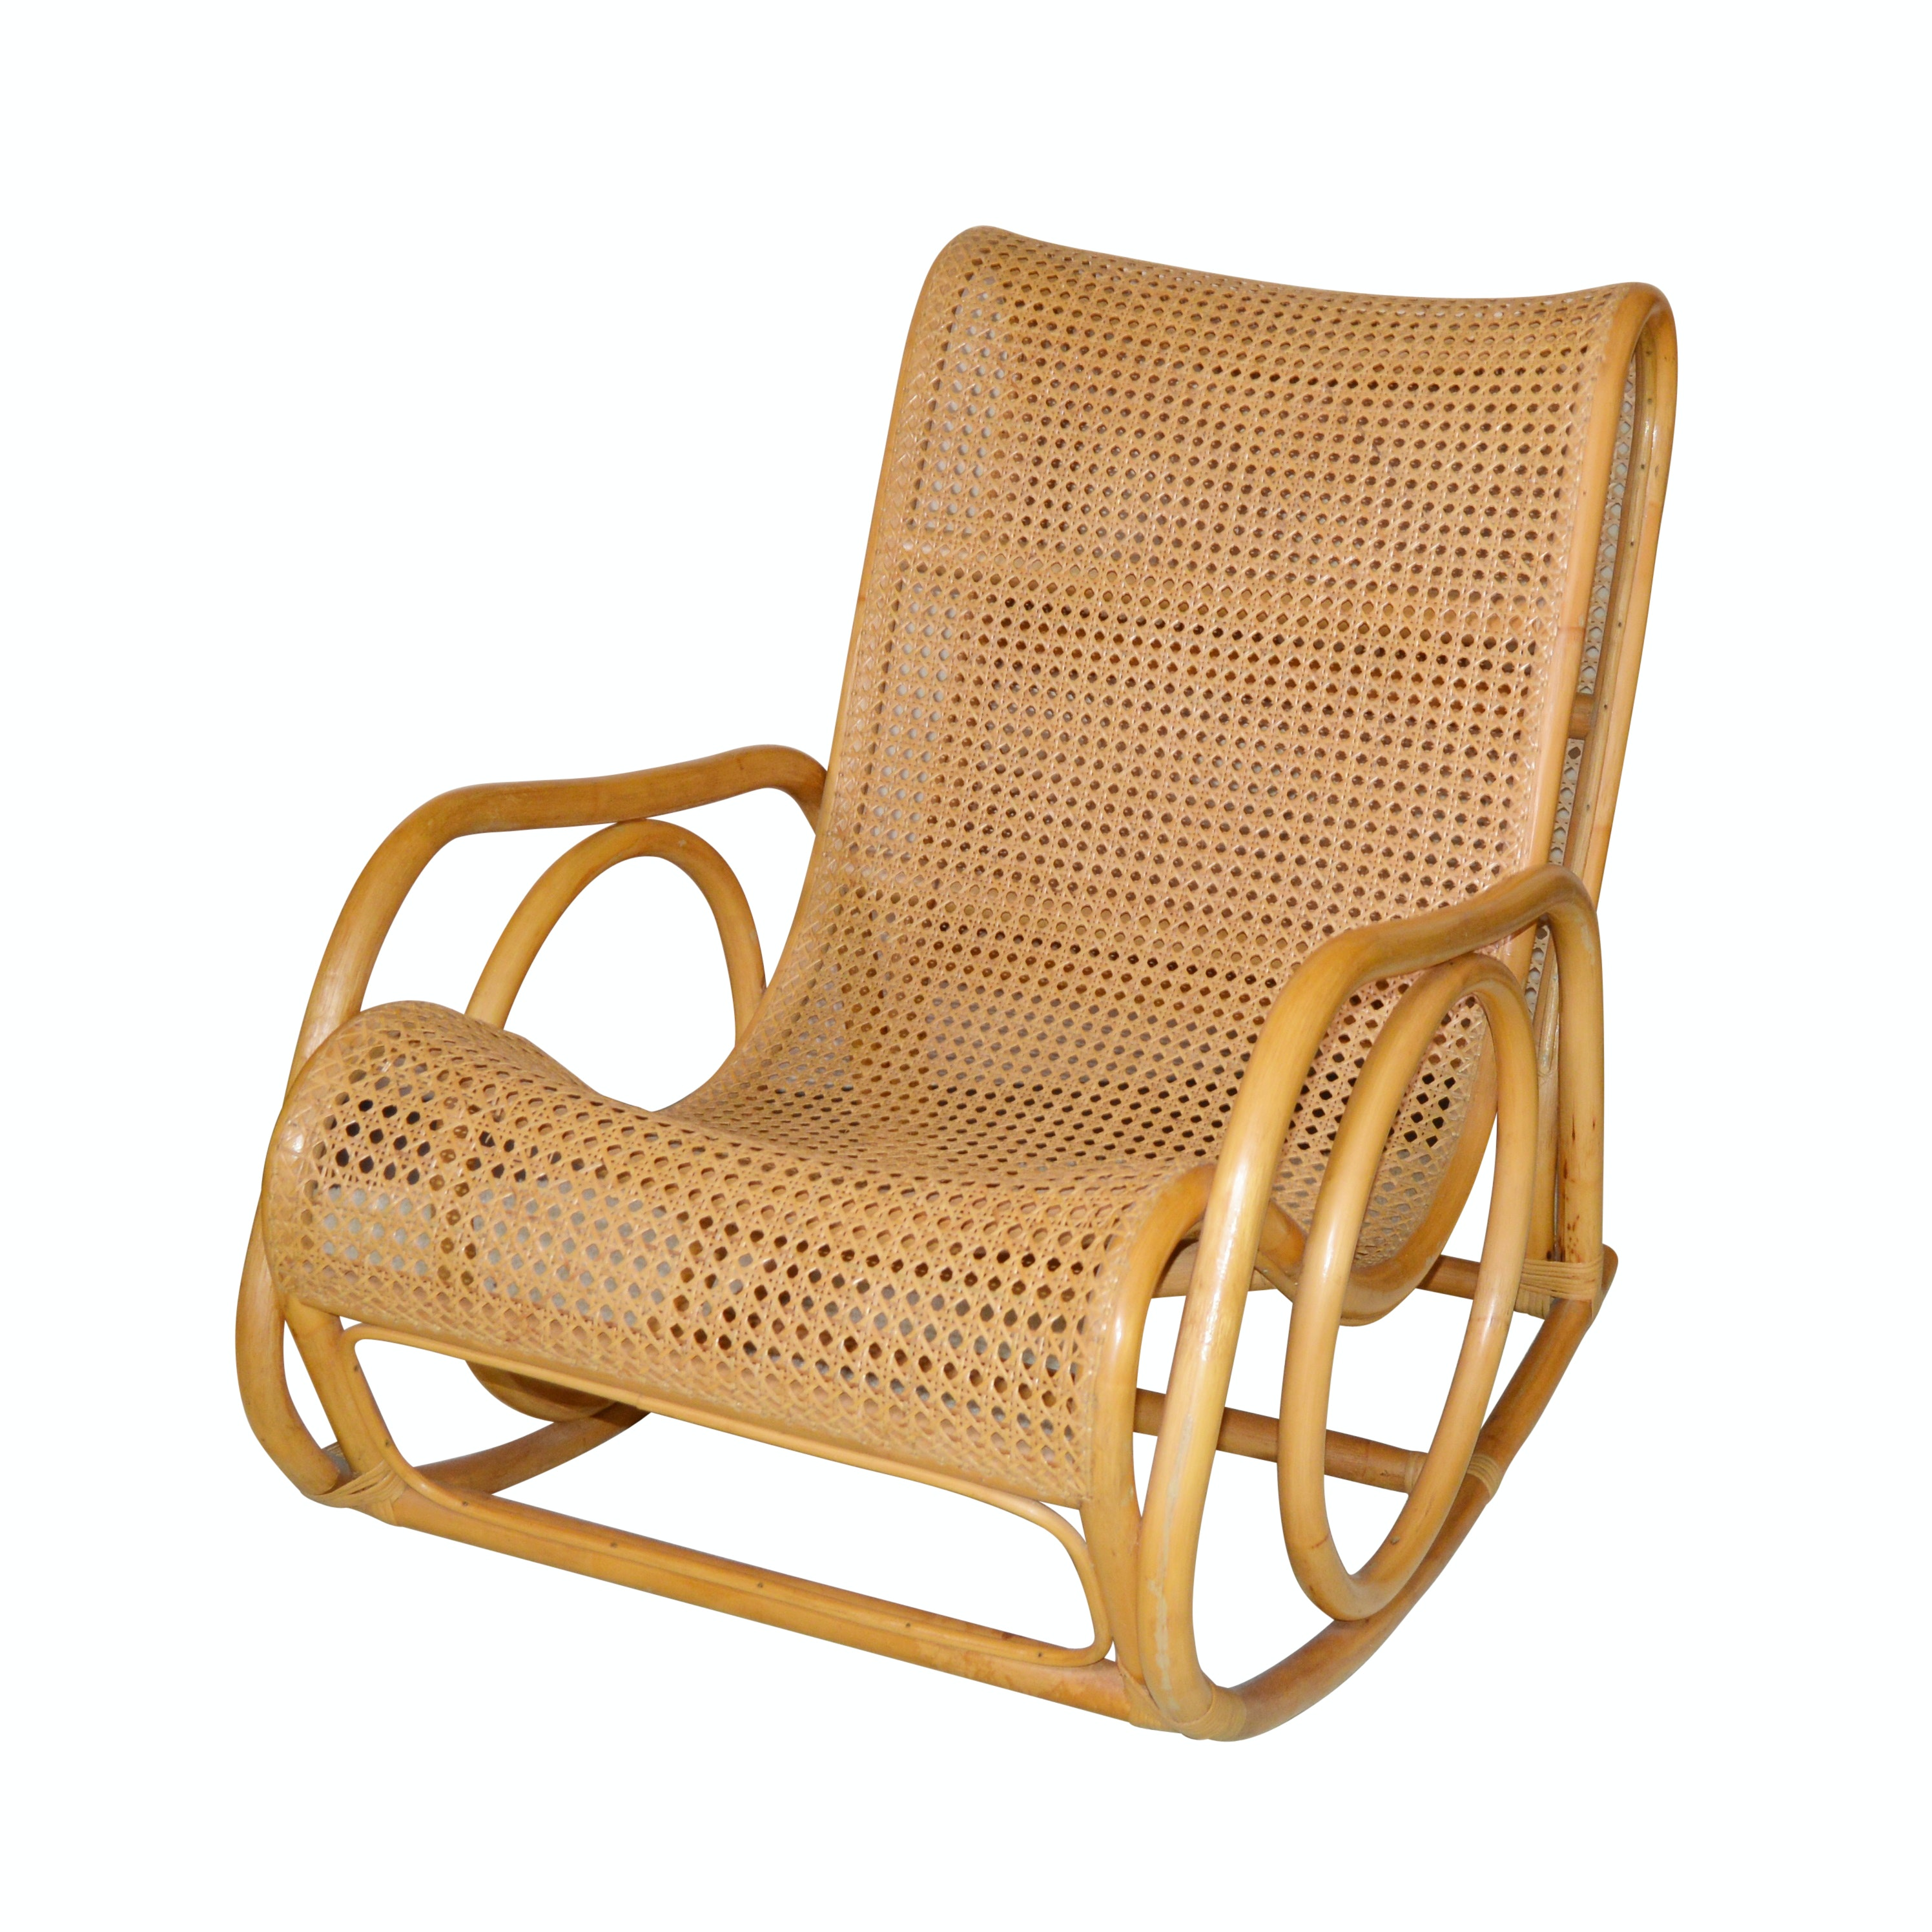 Bauhaus Style Bentwood Rocking Chair, 20th Century